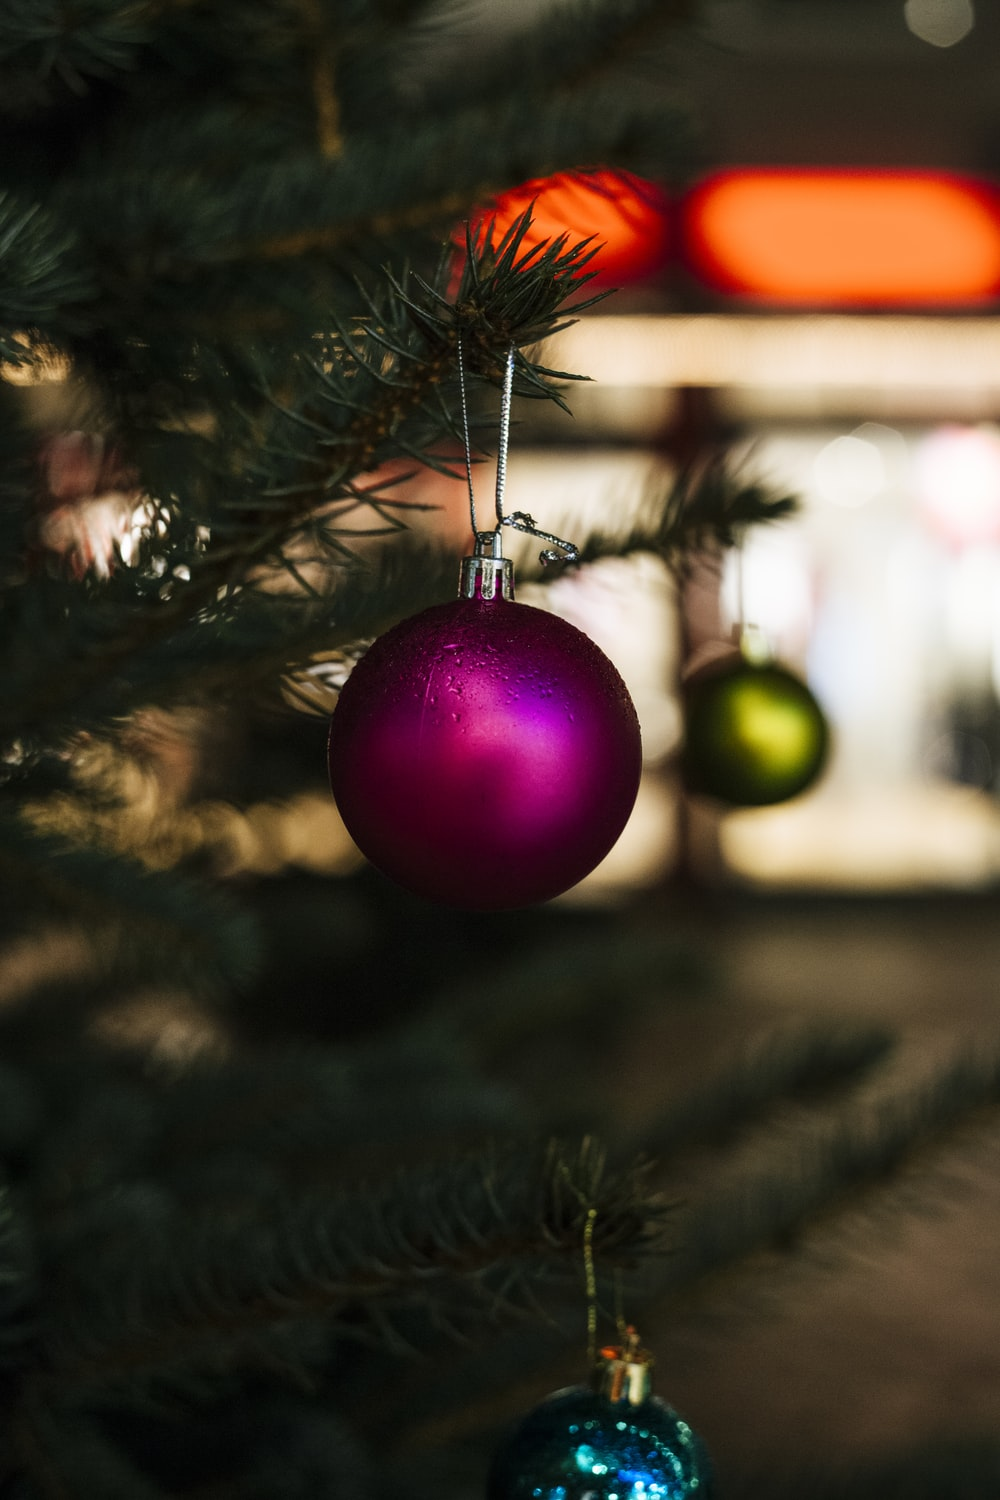 close-up selective focus shot of purple bauble hanging on Christmas tree